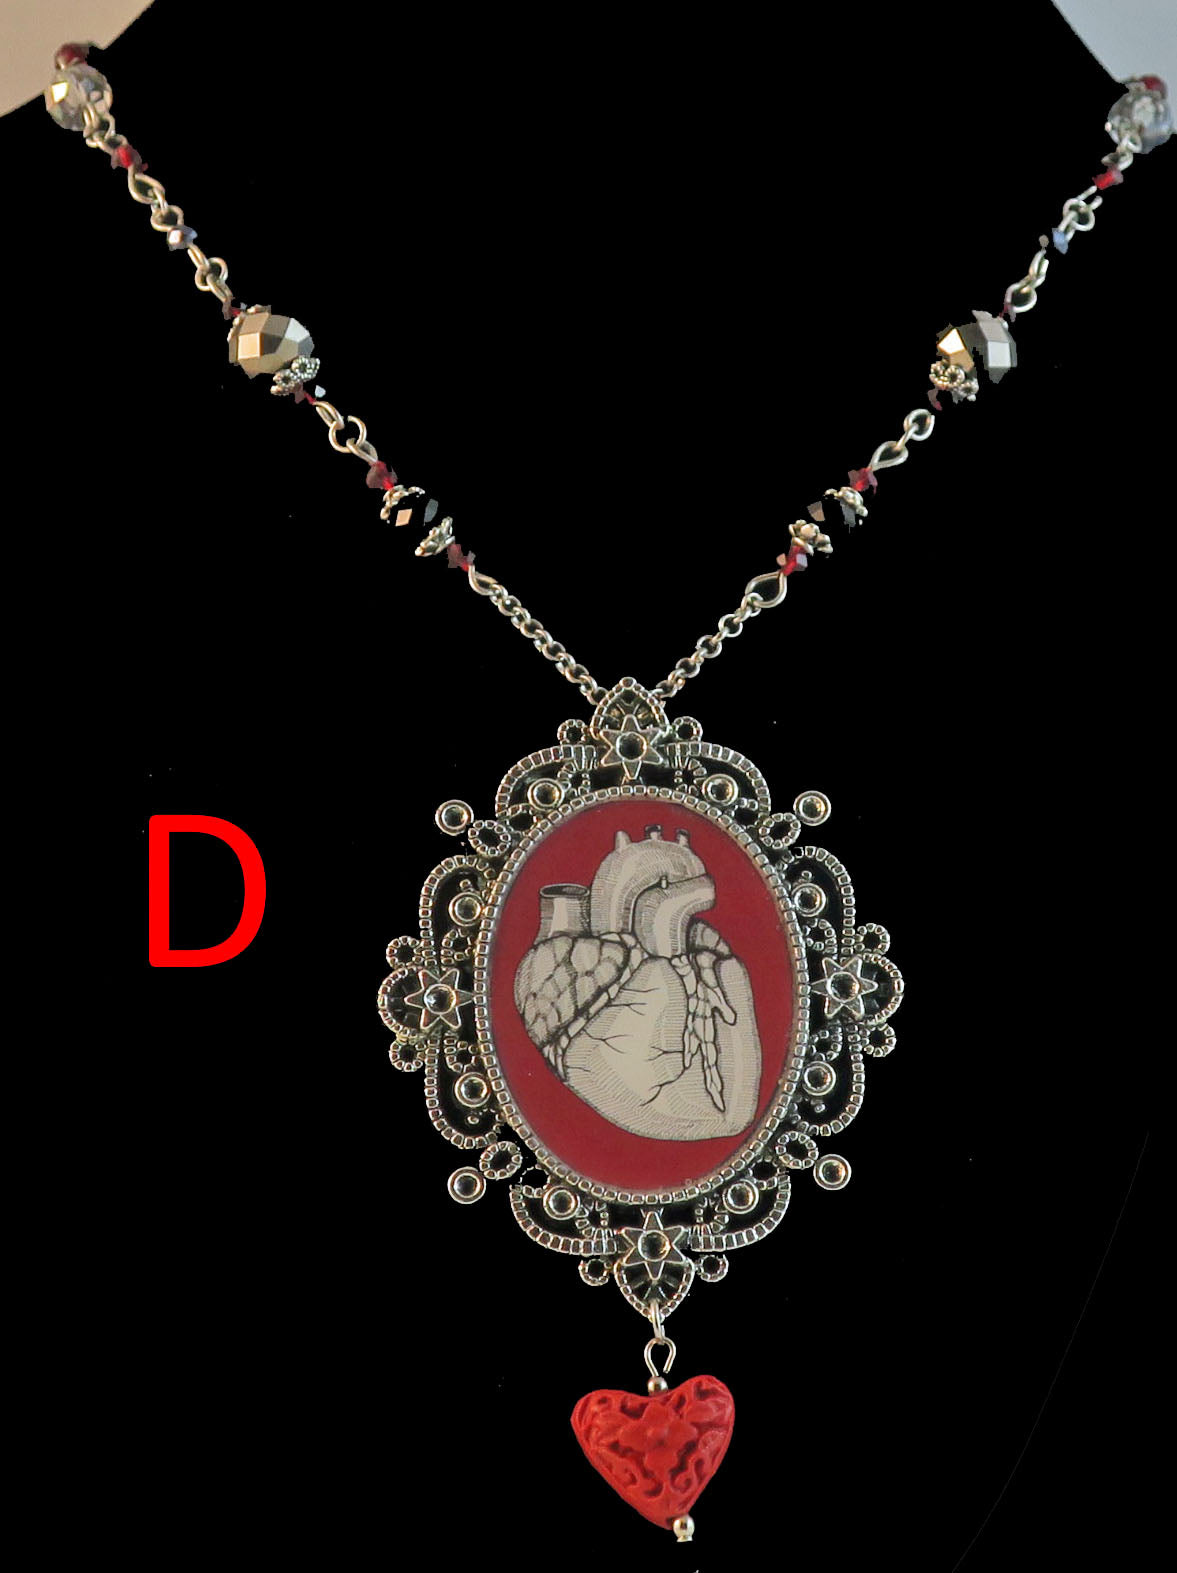 Human Heart Goth/Steampunk Pendant Necklace